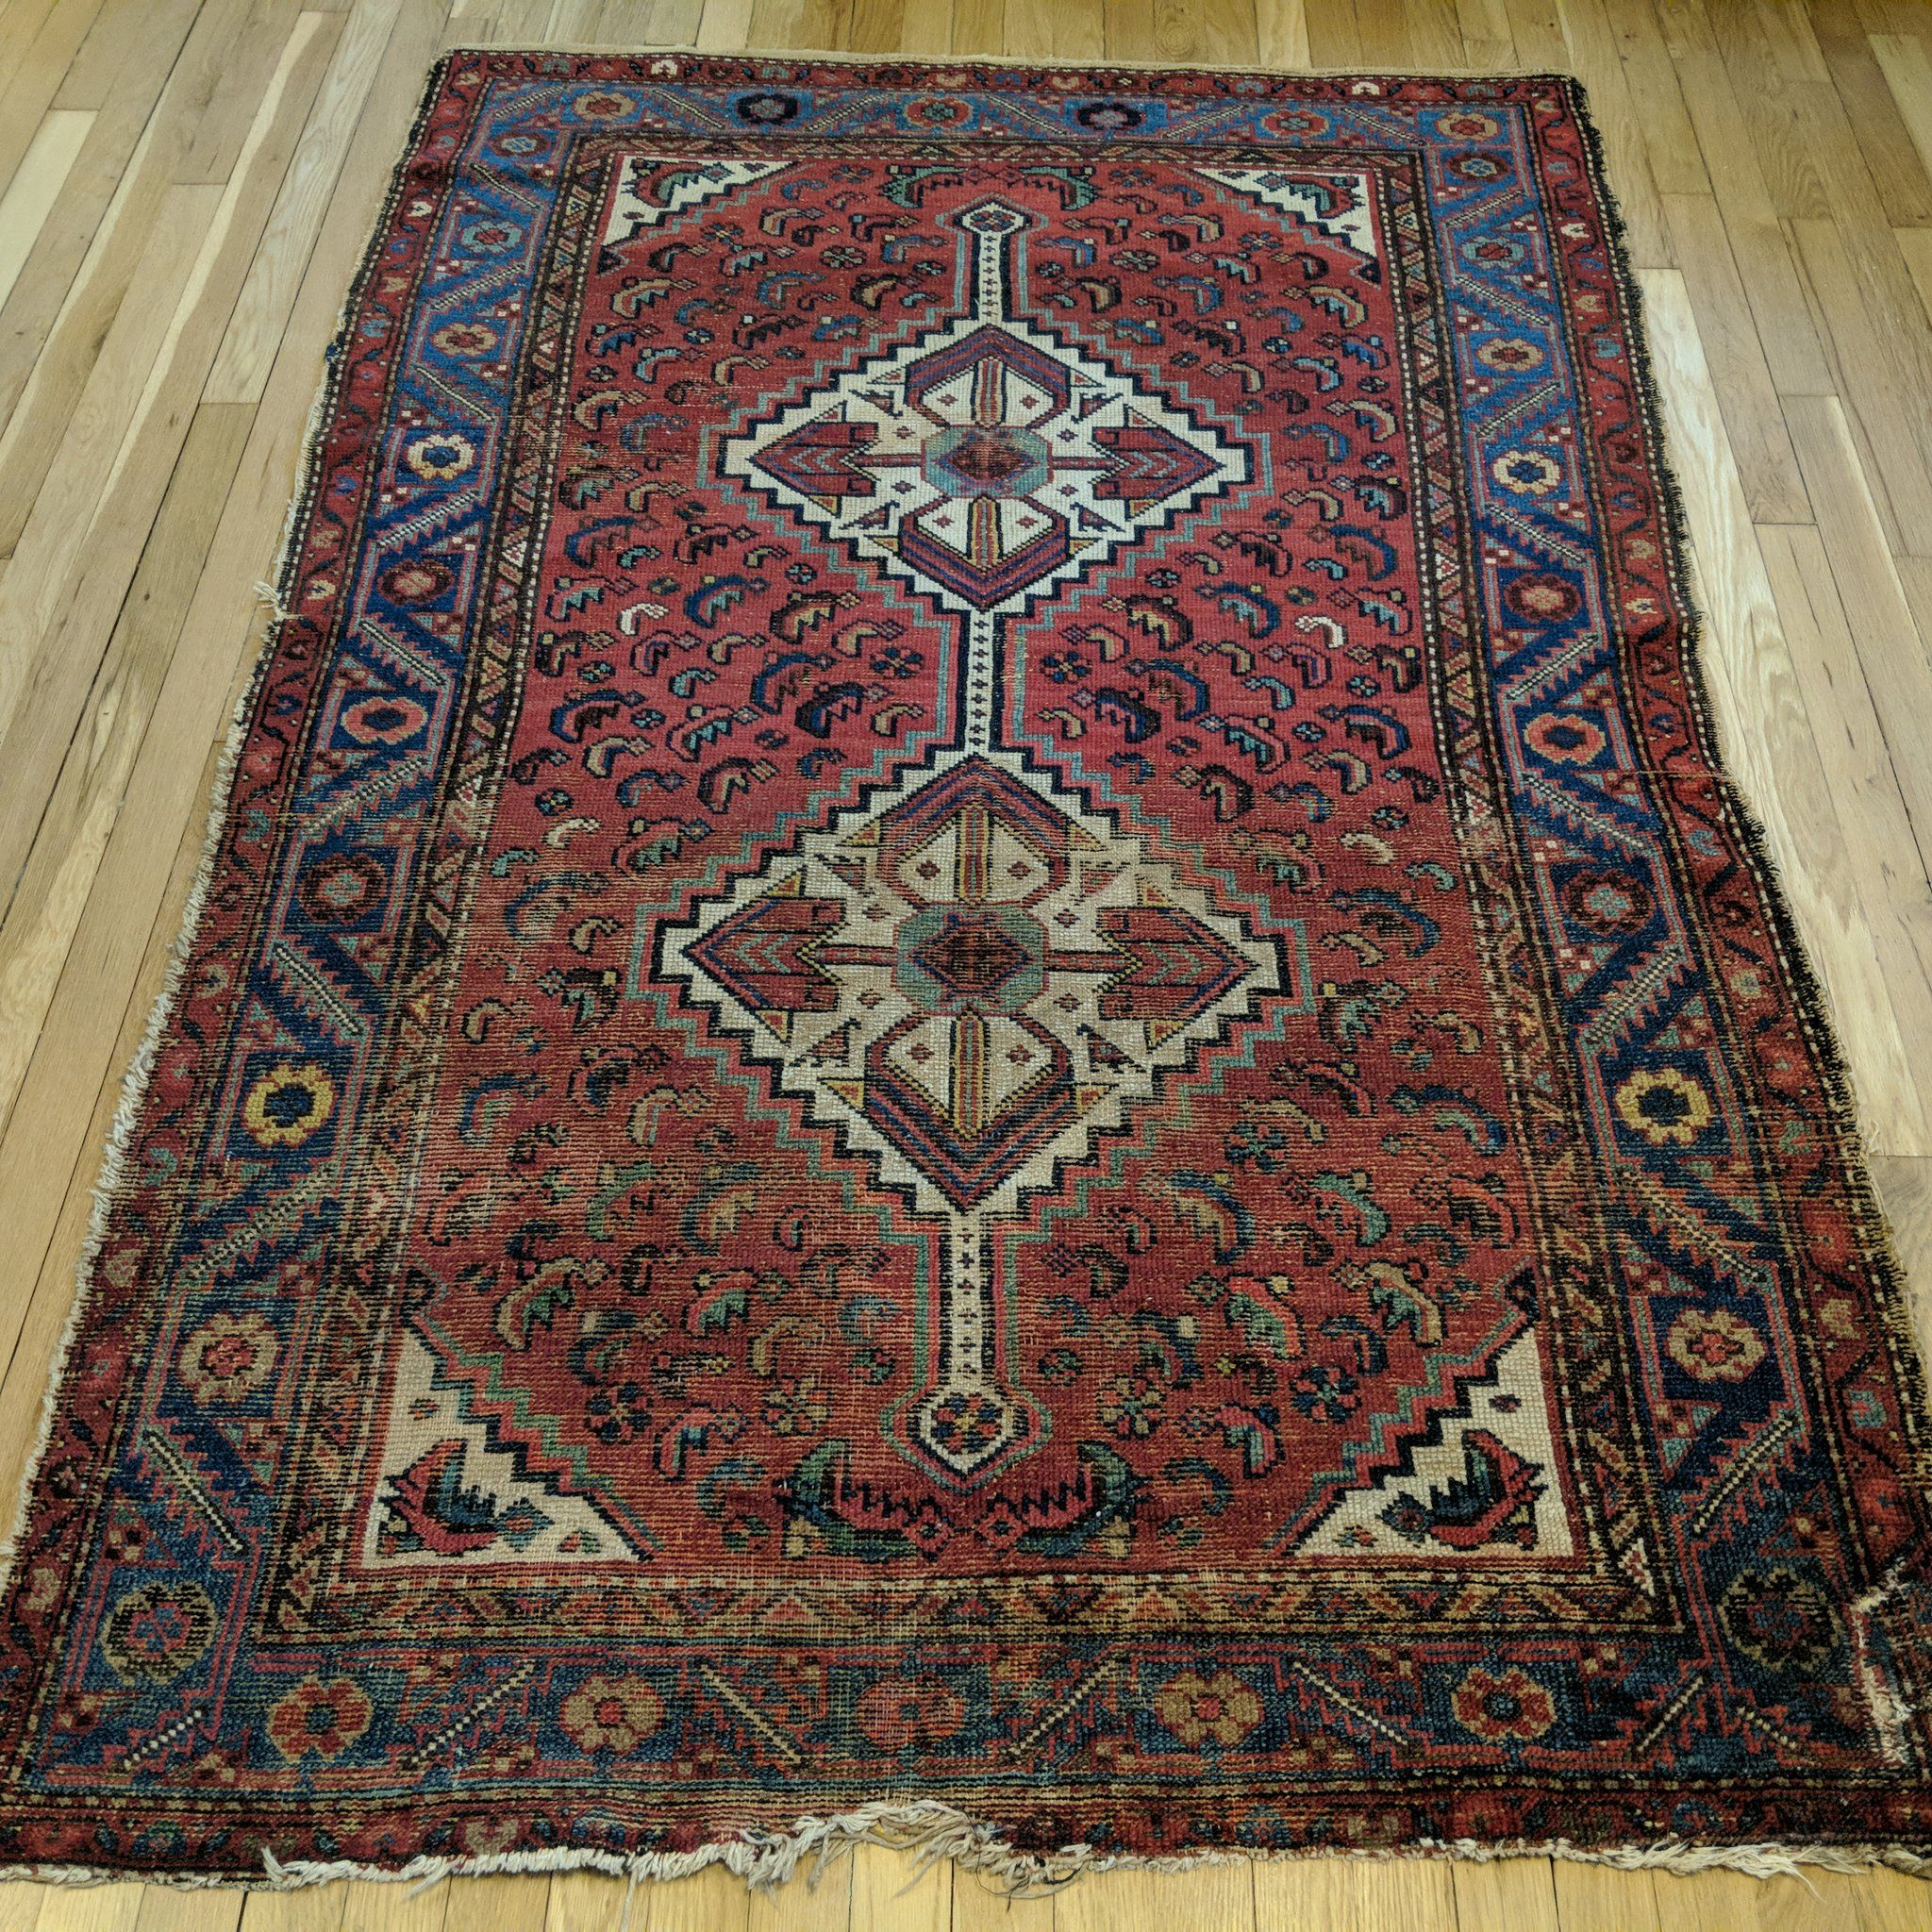 Antique Rug 4 3 X 6 5 Red Rugs Antiques Oriental Rug